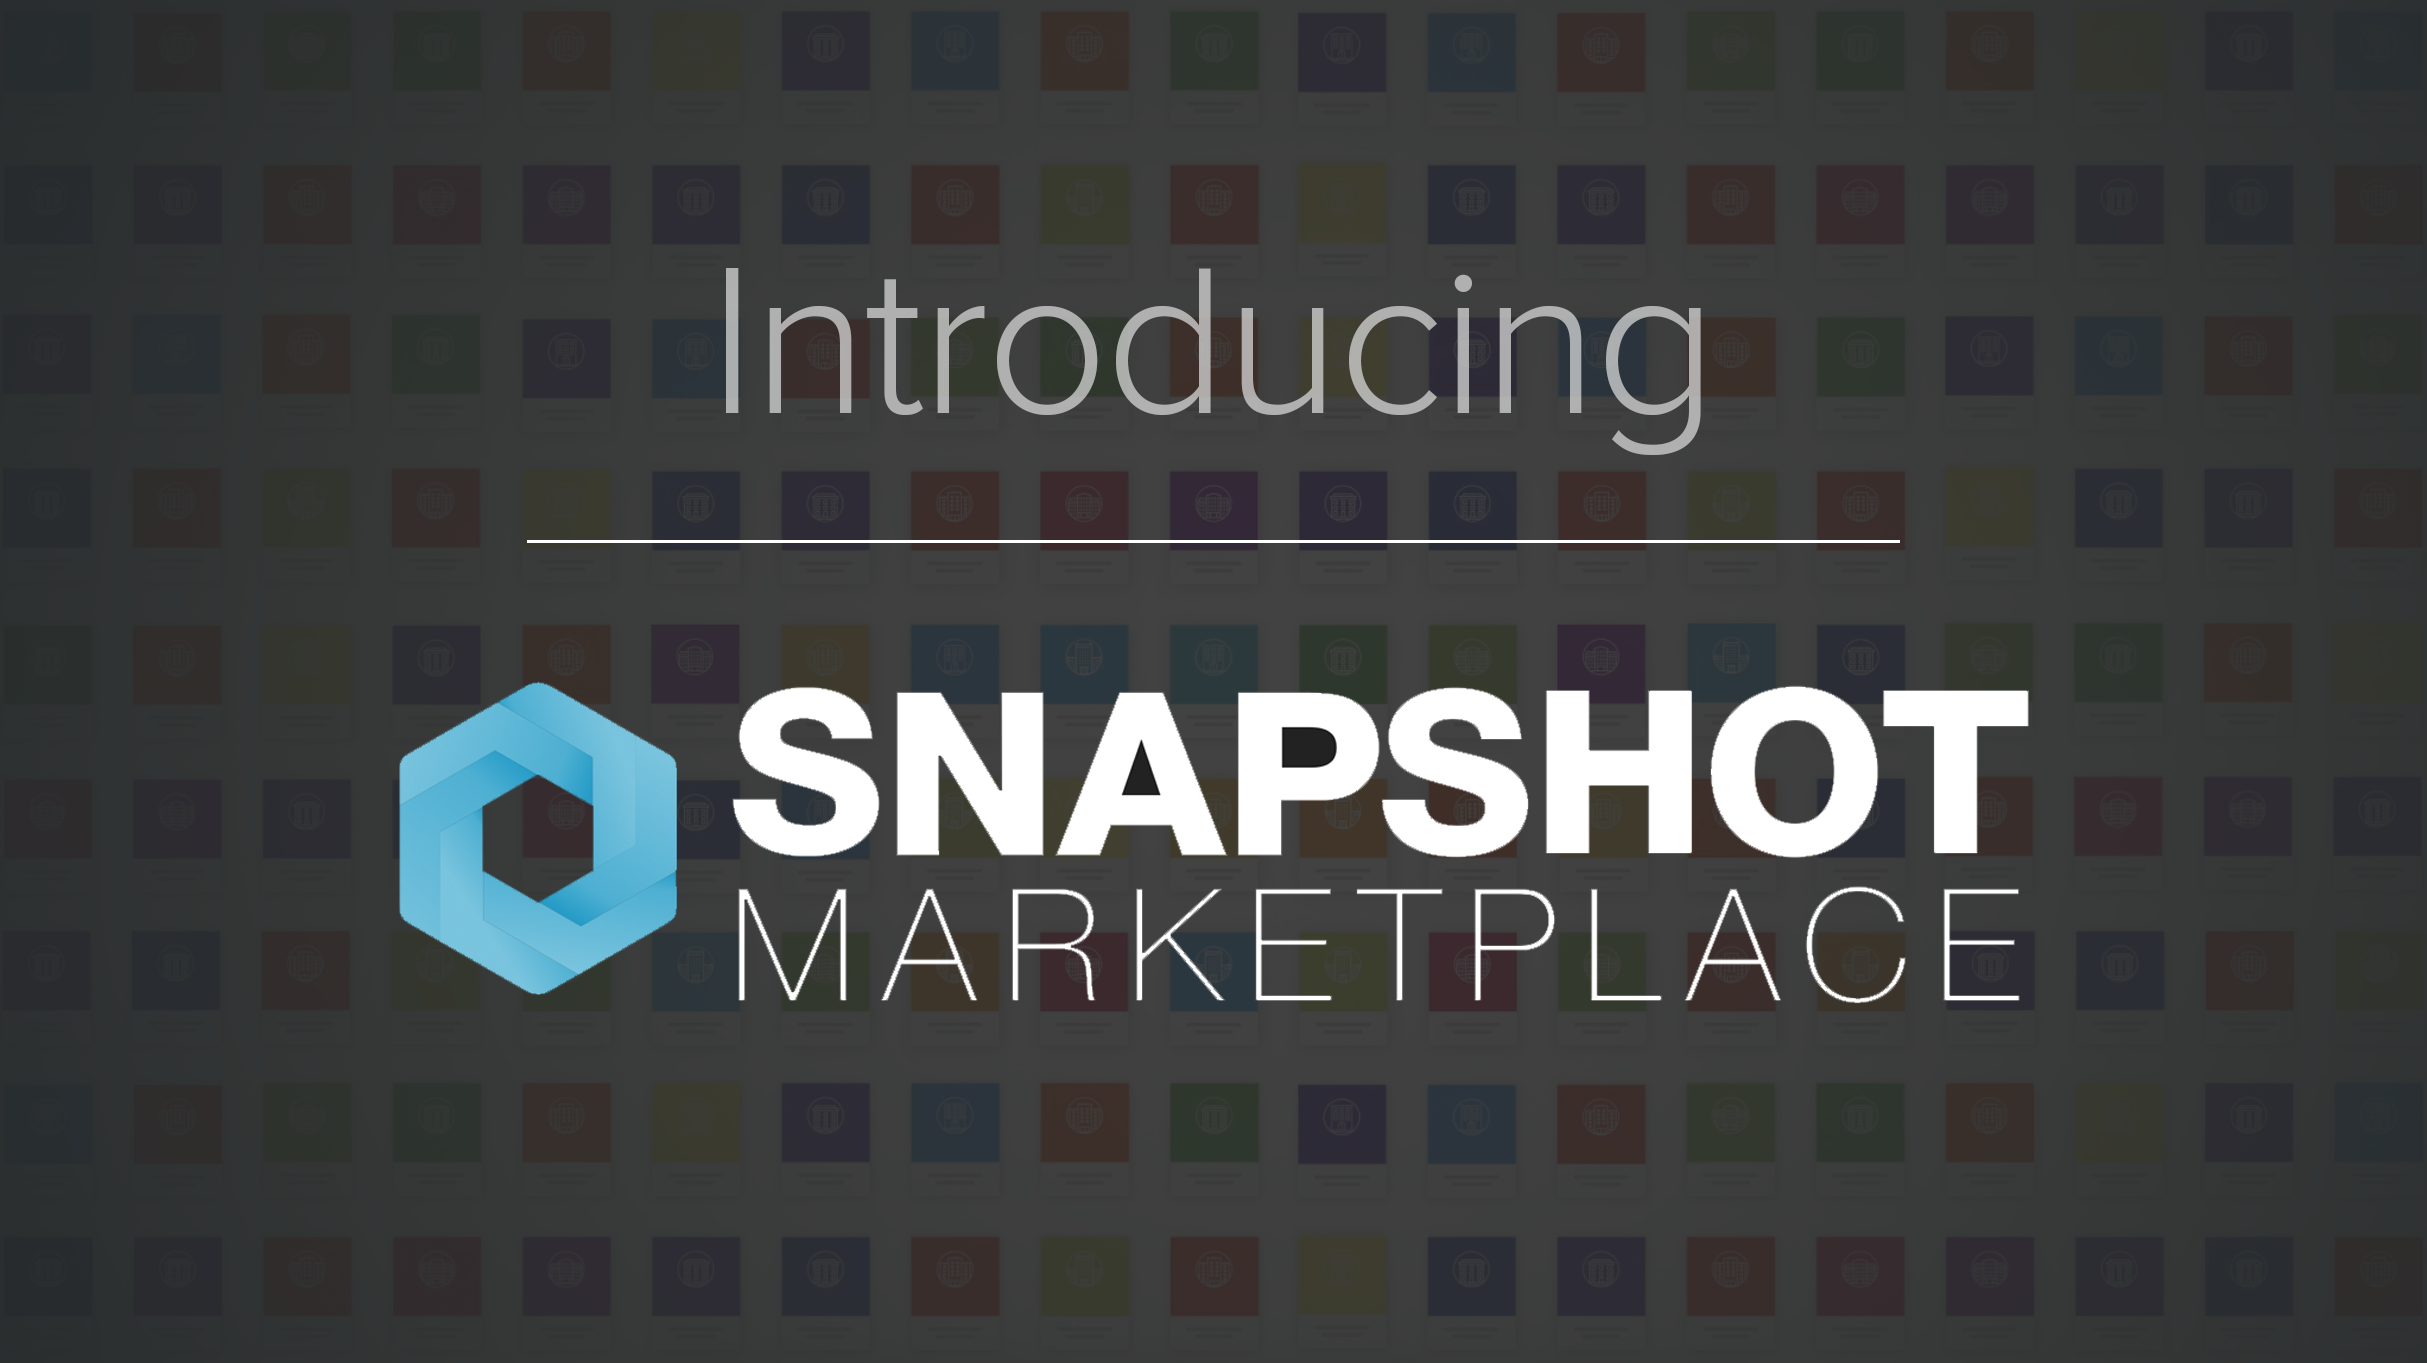 Introducing SnapShot Marketplace for video.png